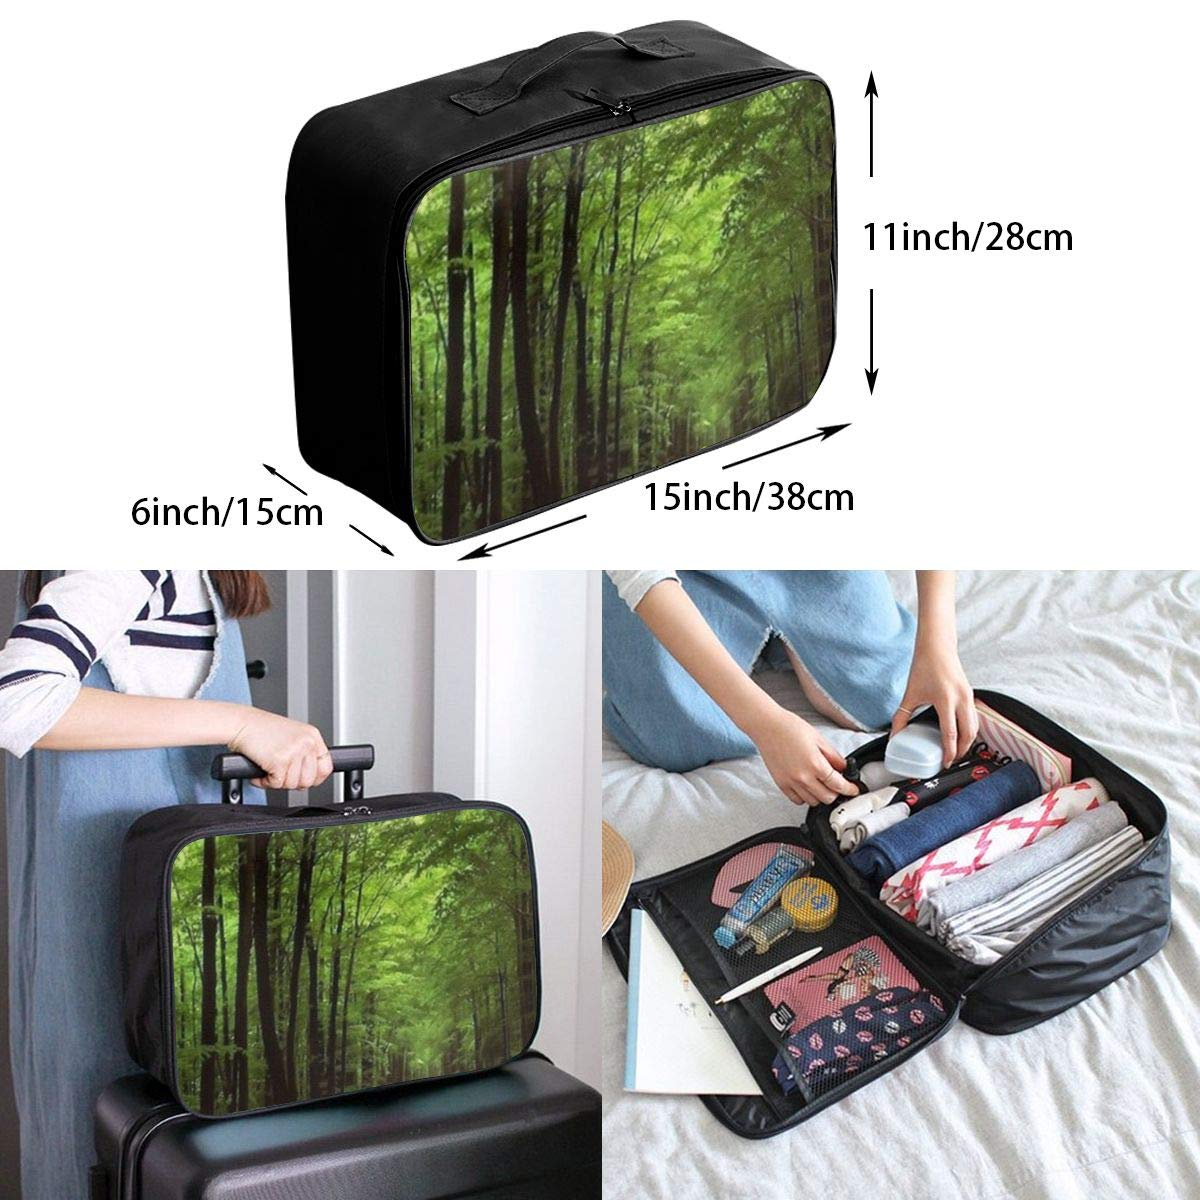 ADGAI Deep in The Forest Thick Green Vegetation Tree Nature Mouse Pad Mat Canvas Travel Weekender Bag,Fashion Custom Lightweight Large Capacity Portable Luggage Bag,Suitcase Trolley Bag